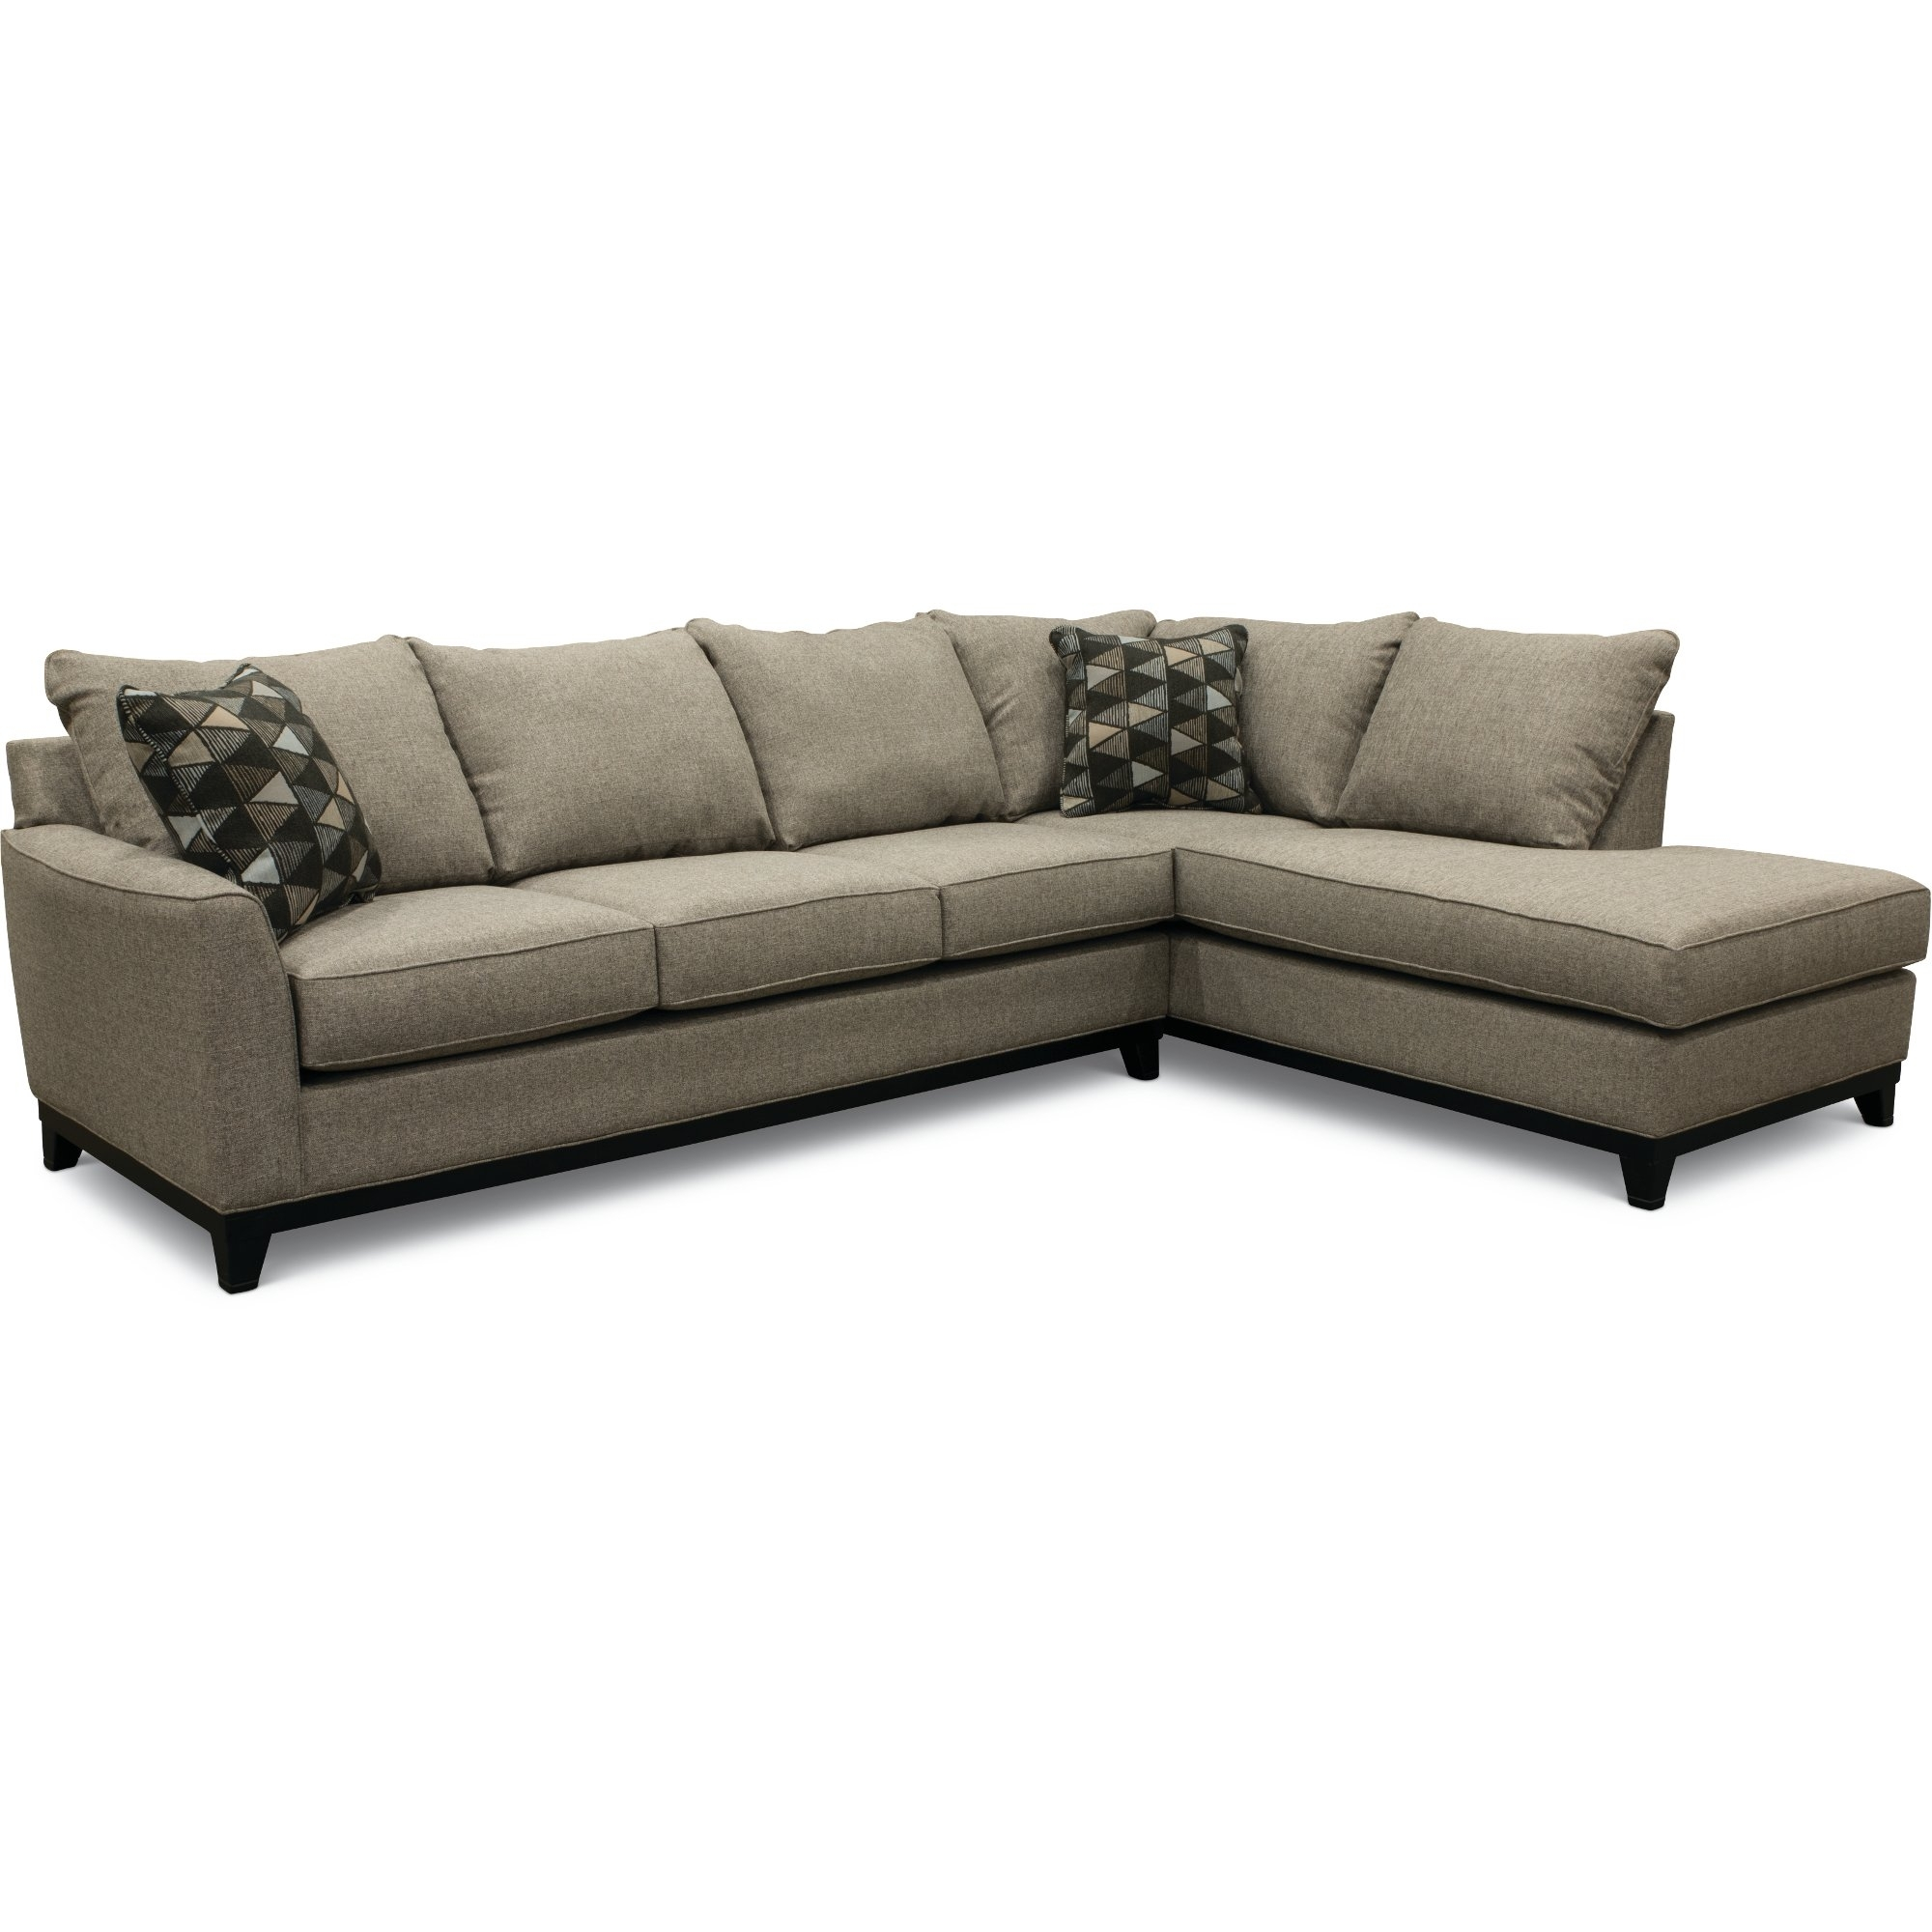 Casual Contemporary Slate Gray 2 Piece Sectional – Emerson With Aidan 4 Piece Sectionals (Image 13 of 25)